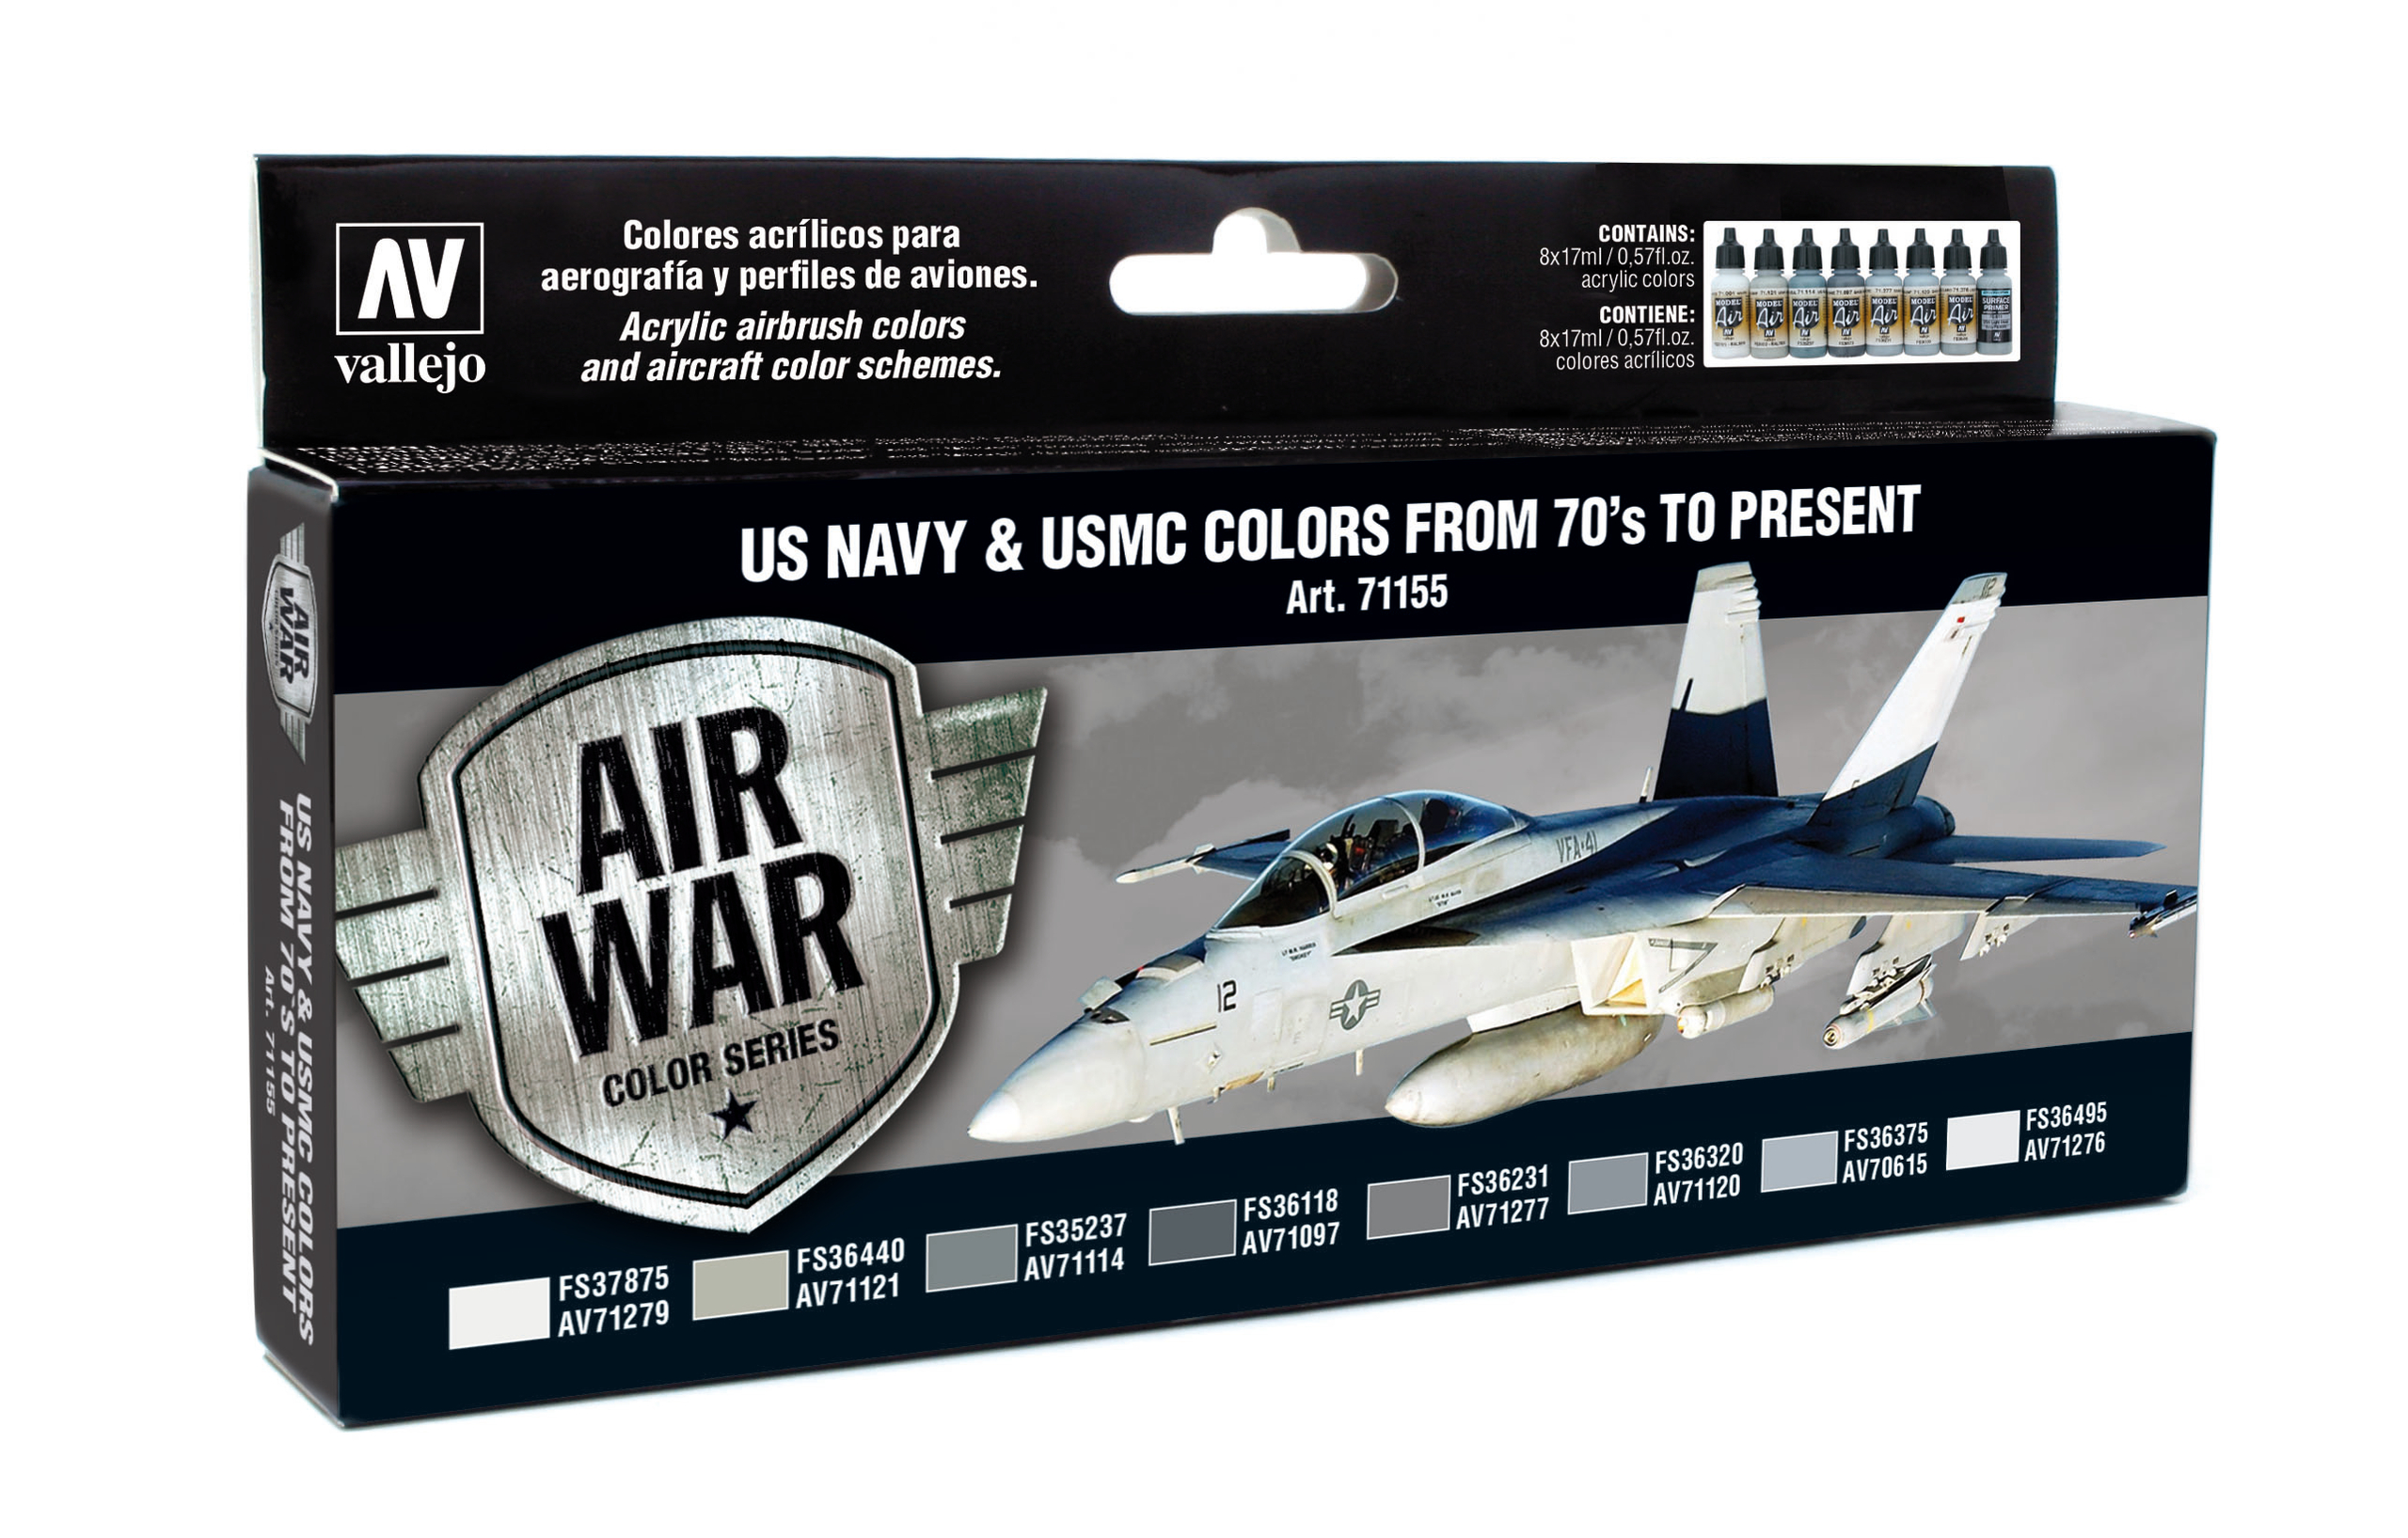 Vallejo Model Air US NAVY & USMC Colors from 70's to present Set Airbrush Farbe 8x17ml